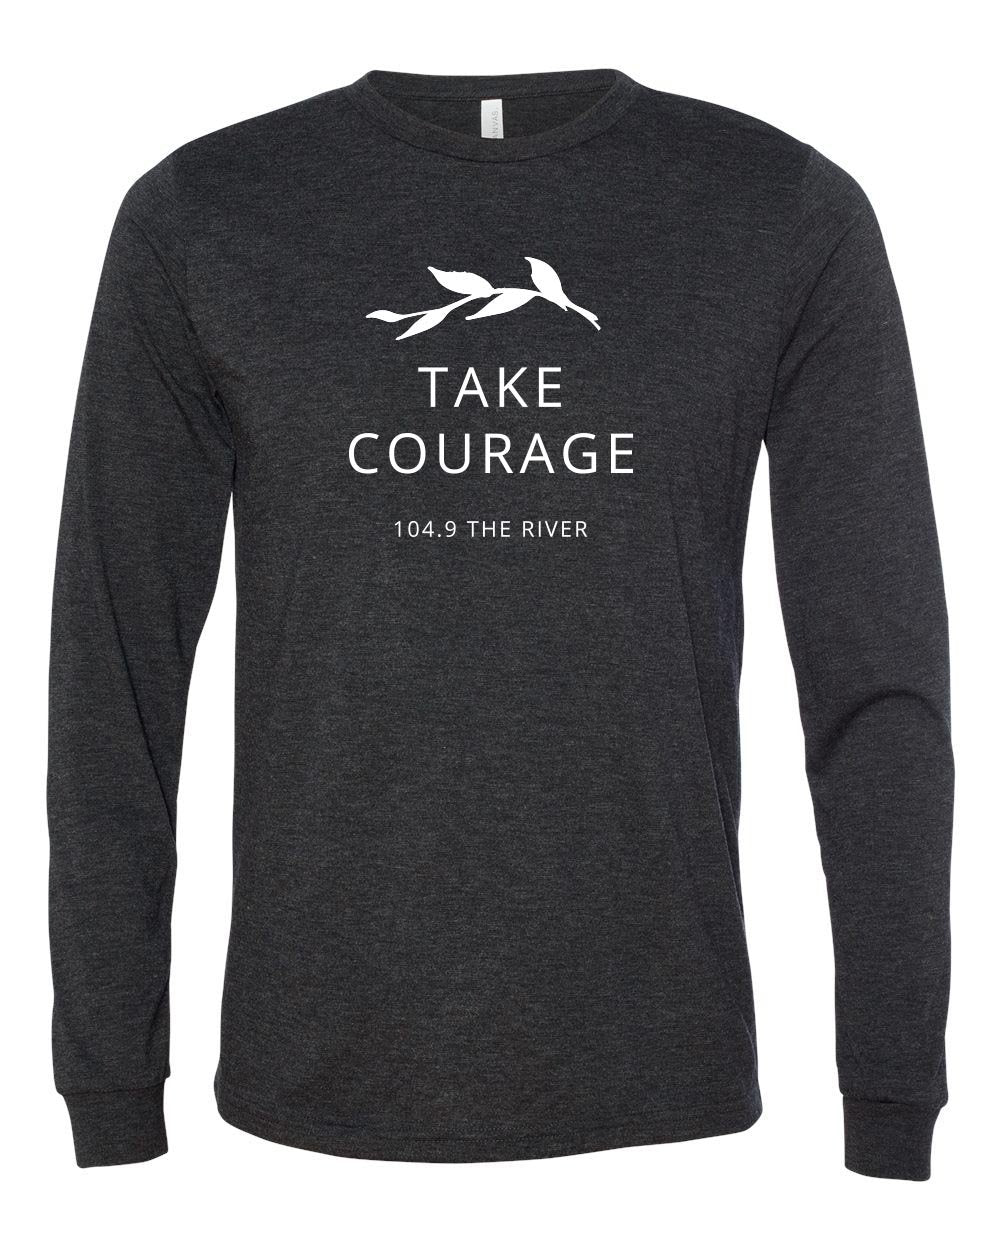 Take Courage Long Sleeve Shirt